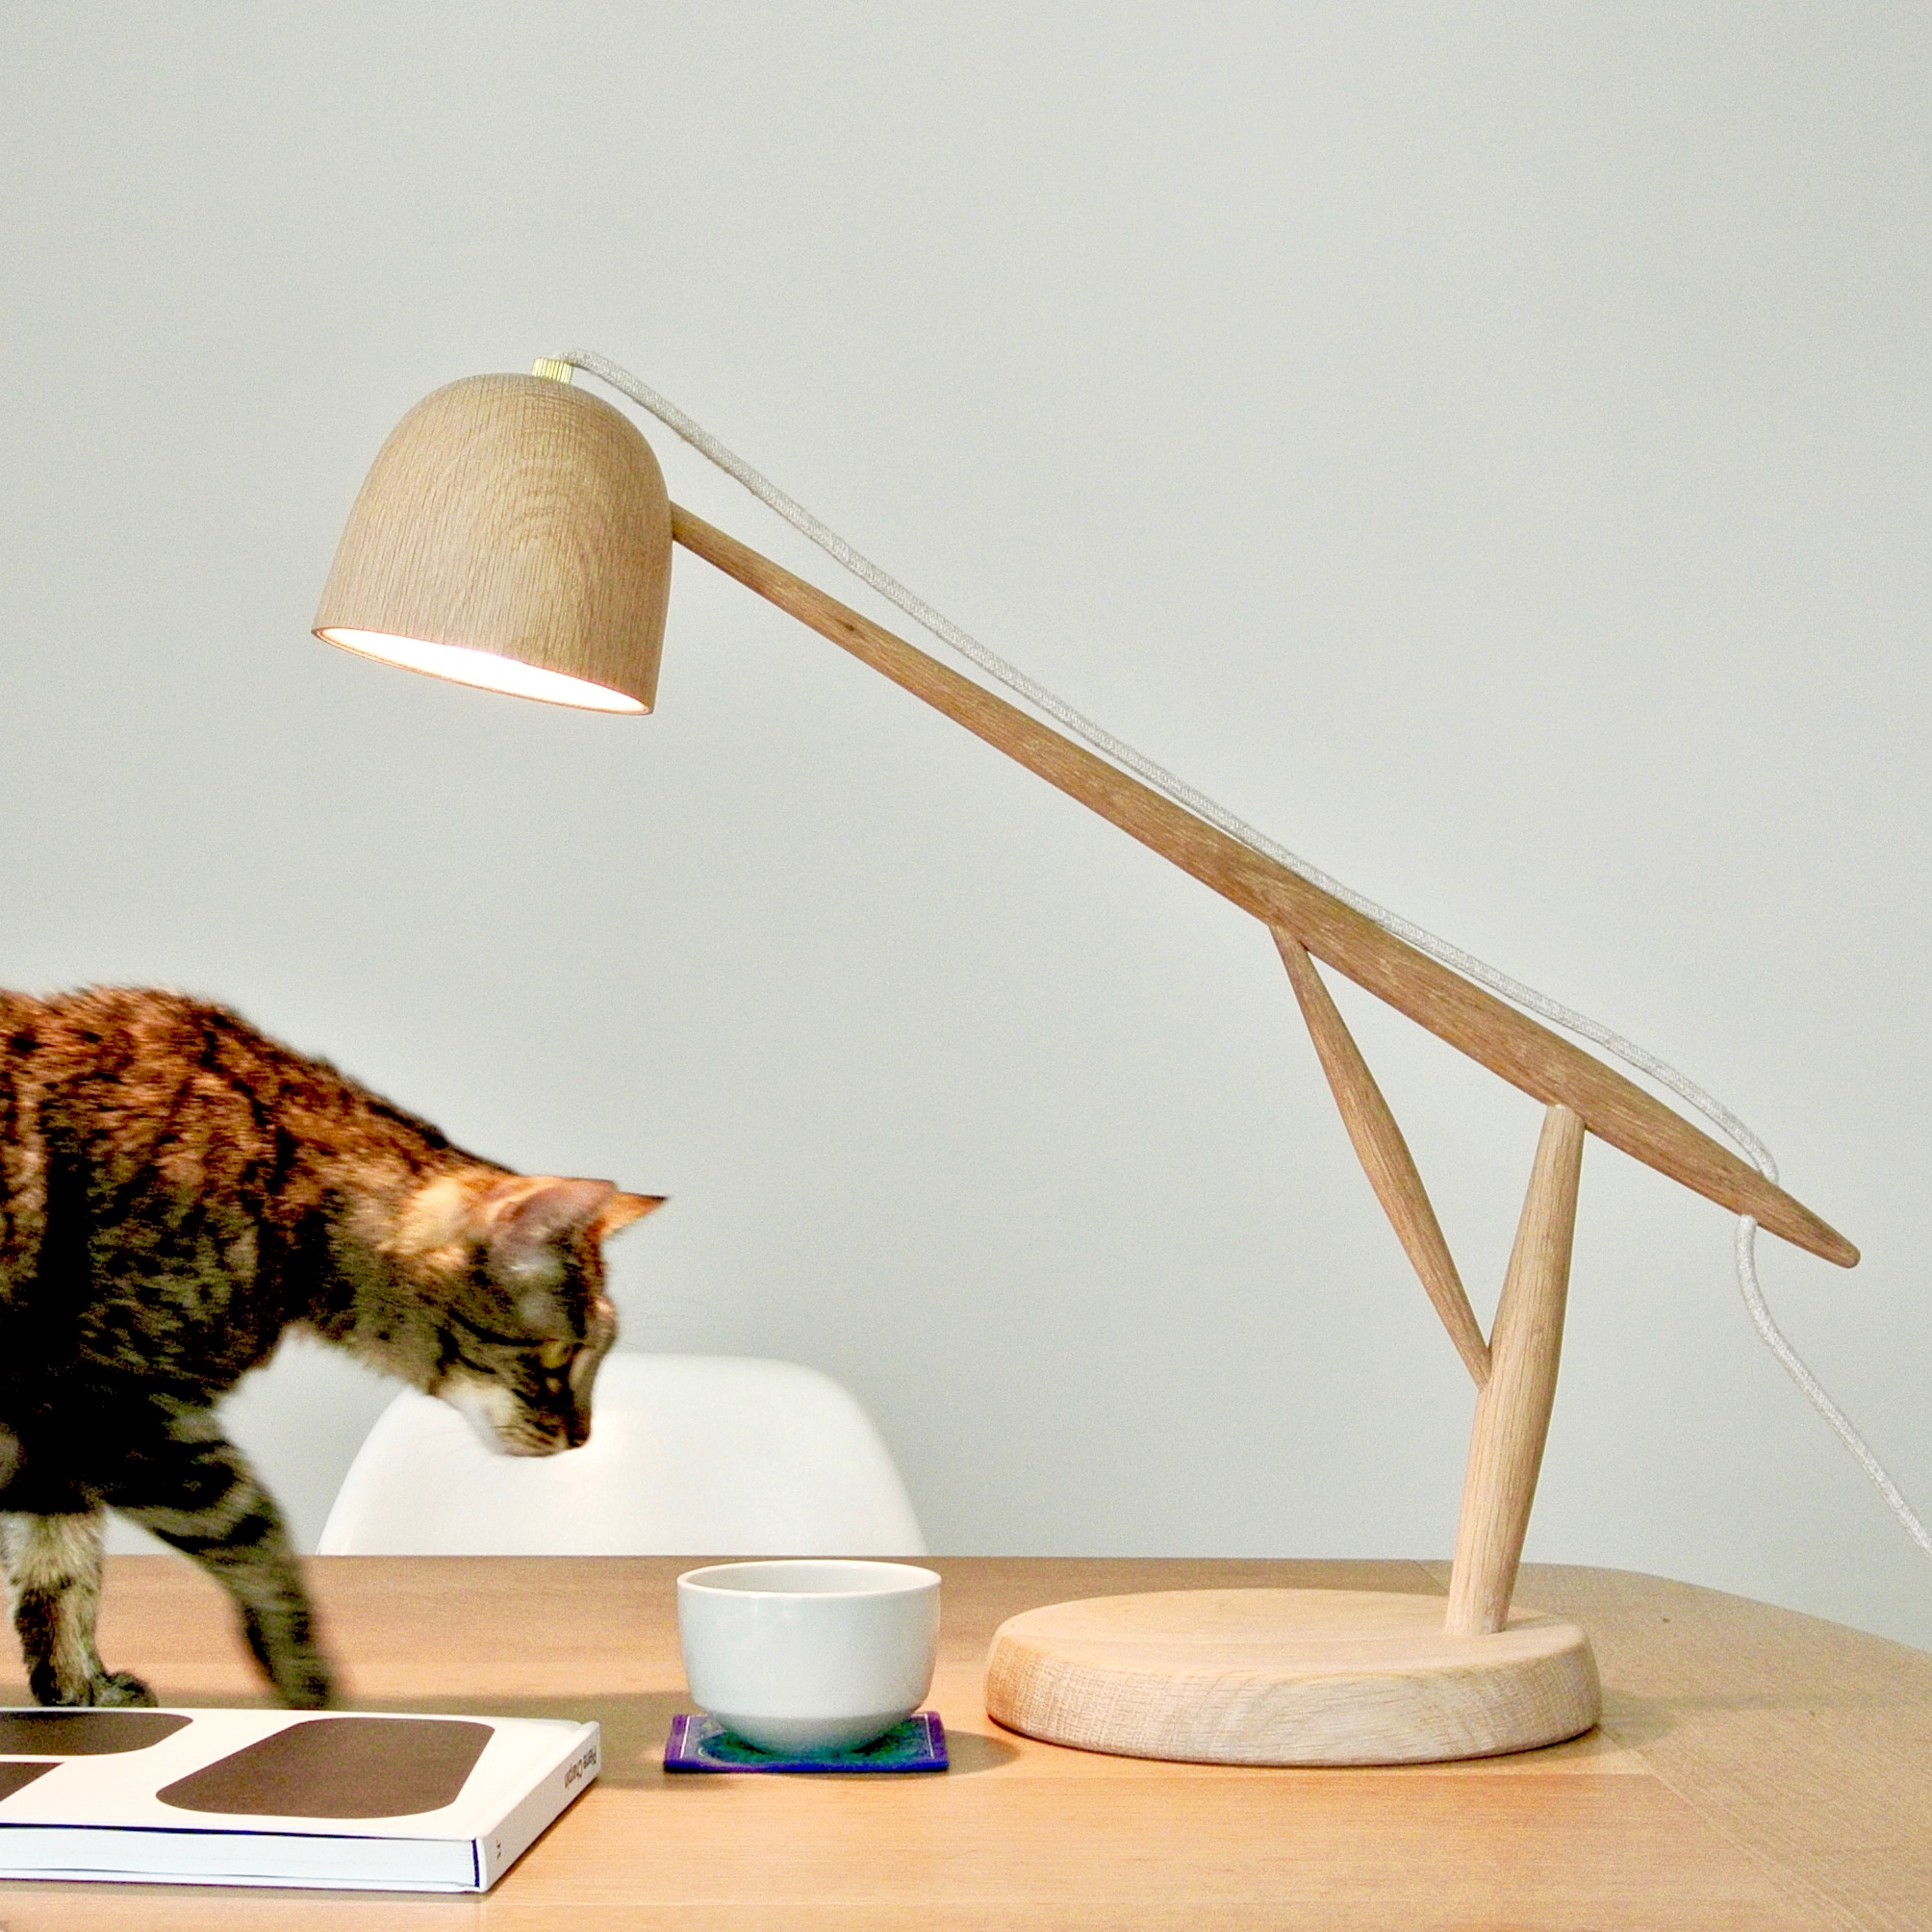 desk rpisite crowdyhouse com concrete onsingularity lamp small lamps